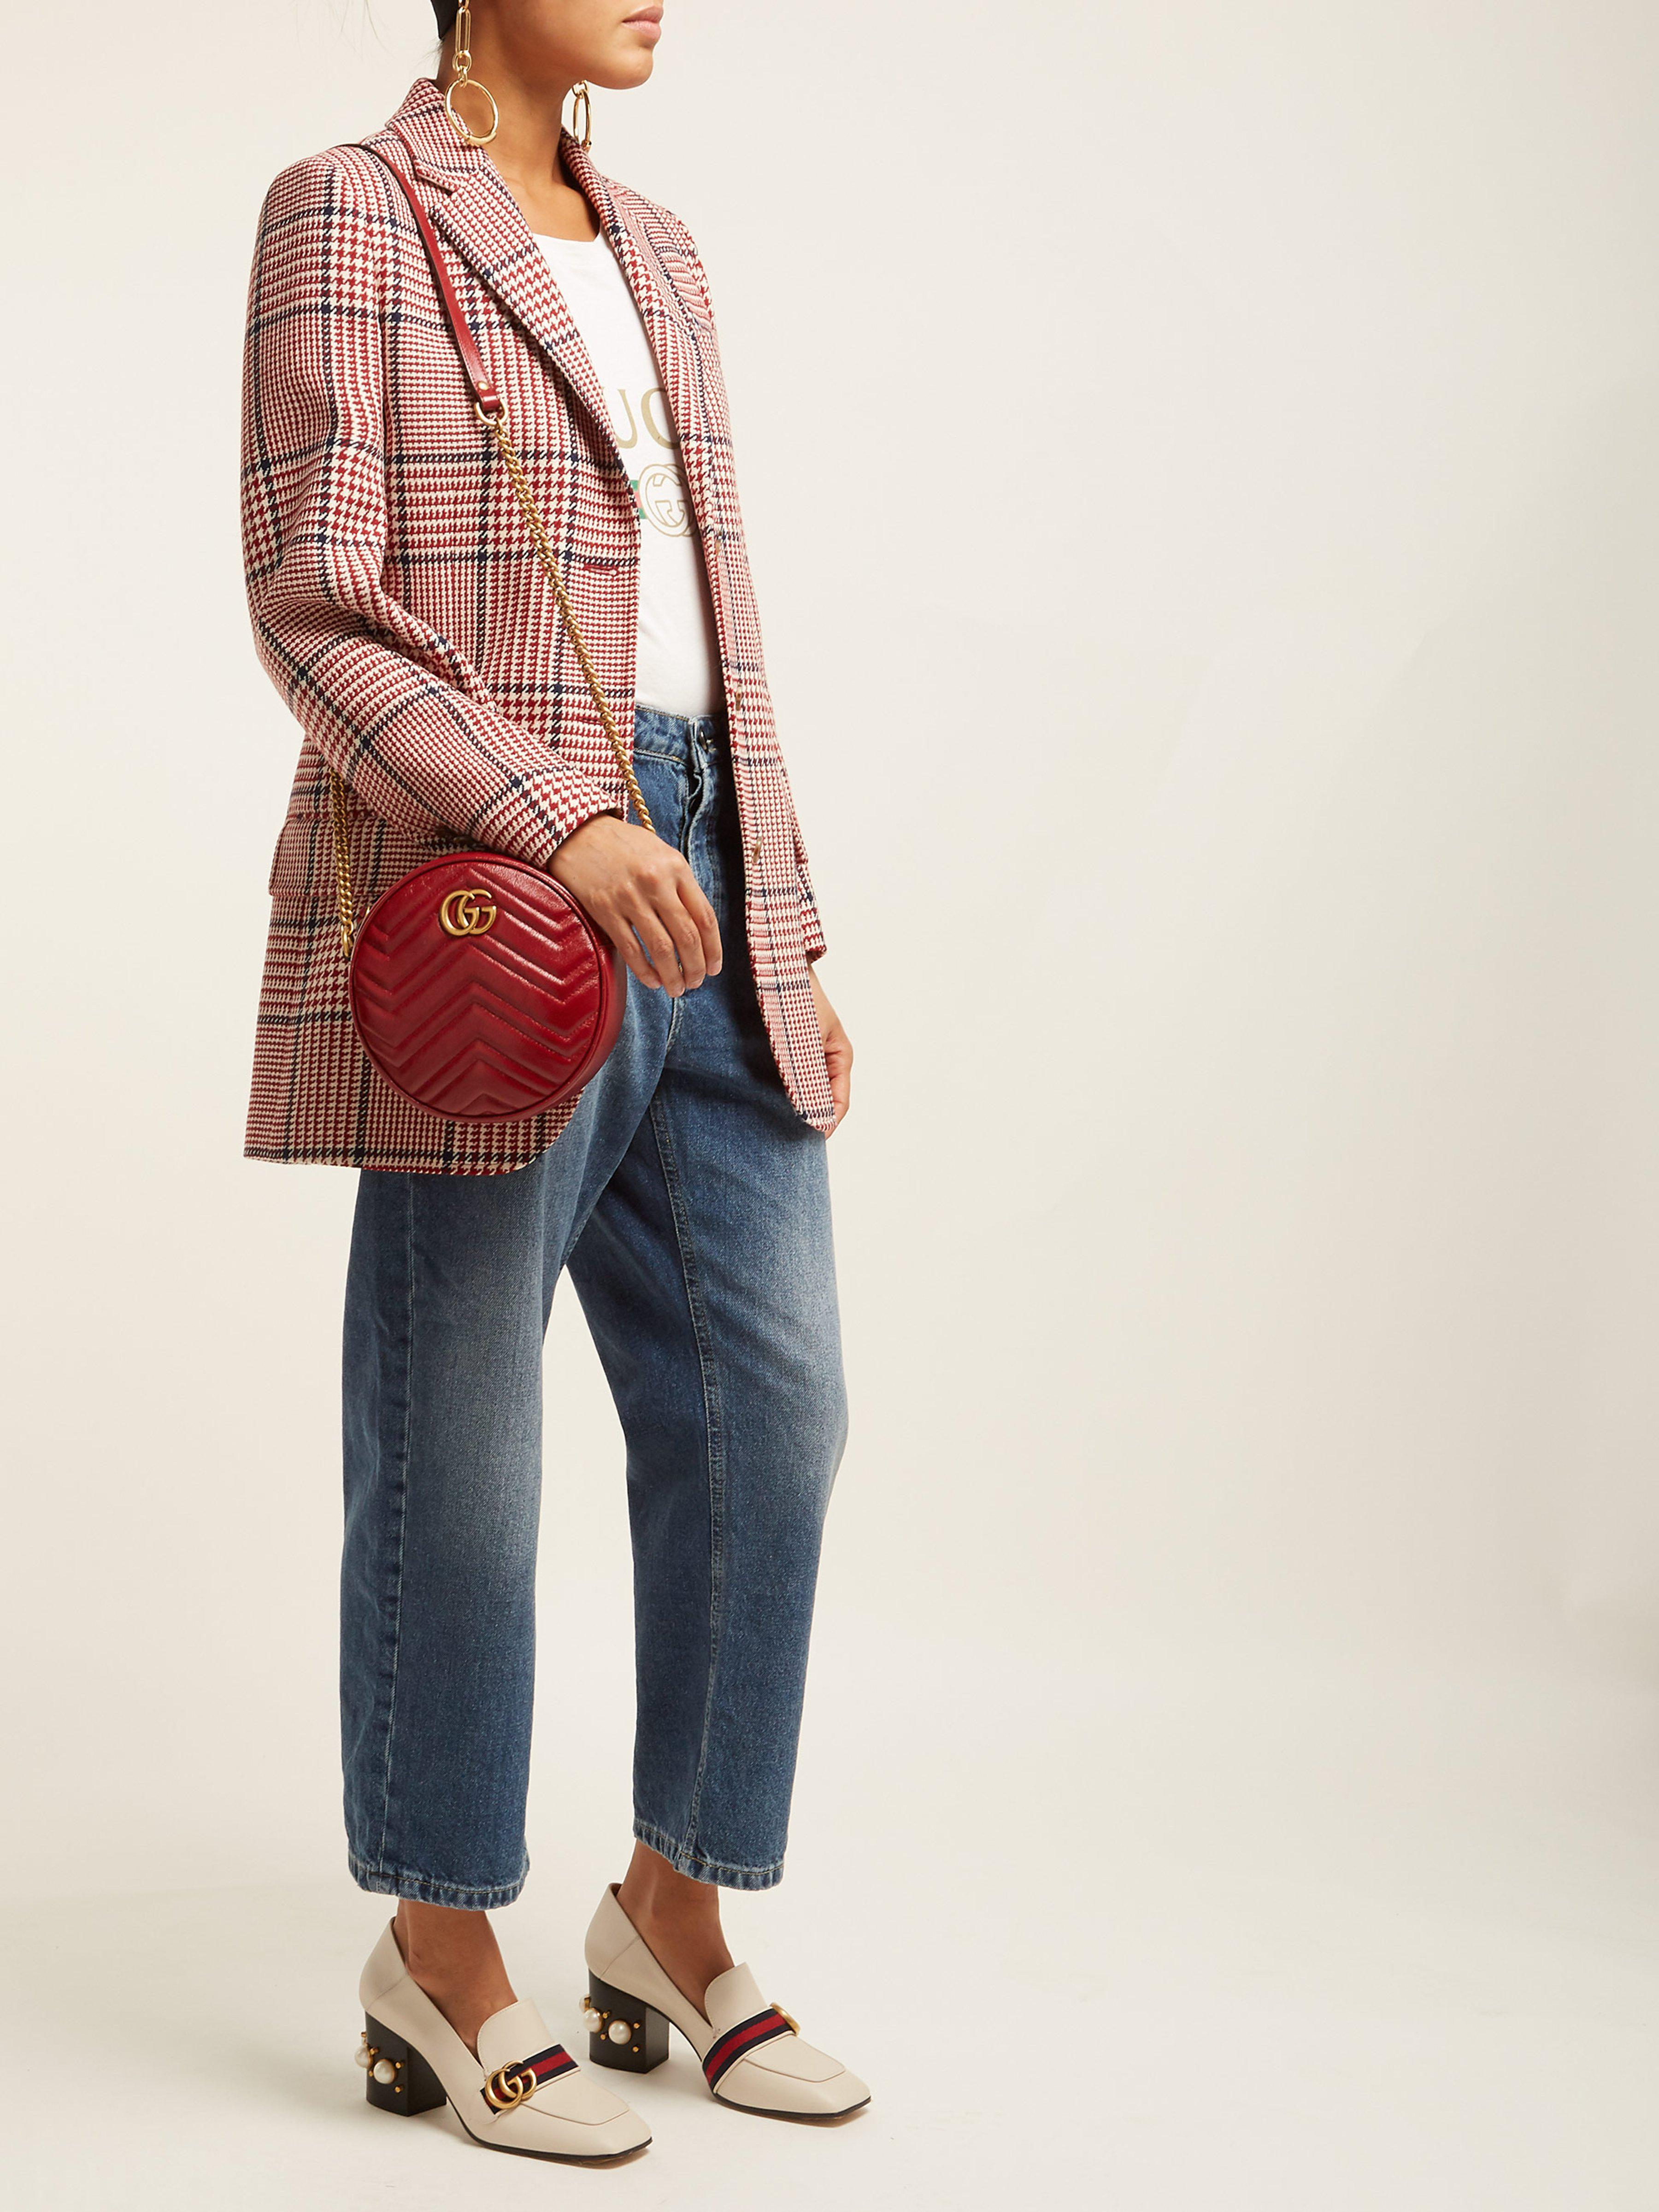 64de03c100dc Gucci Gg Marmont Circular Leather Cross Body Bag in Red - Lyst